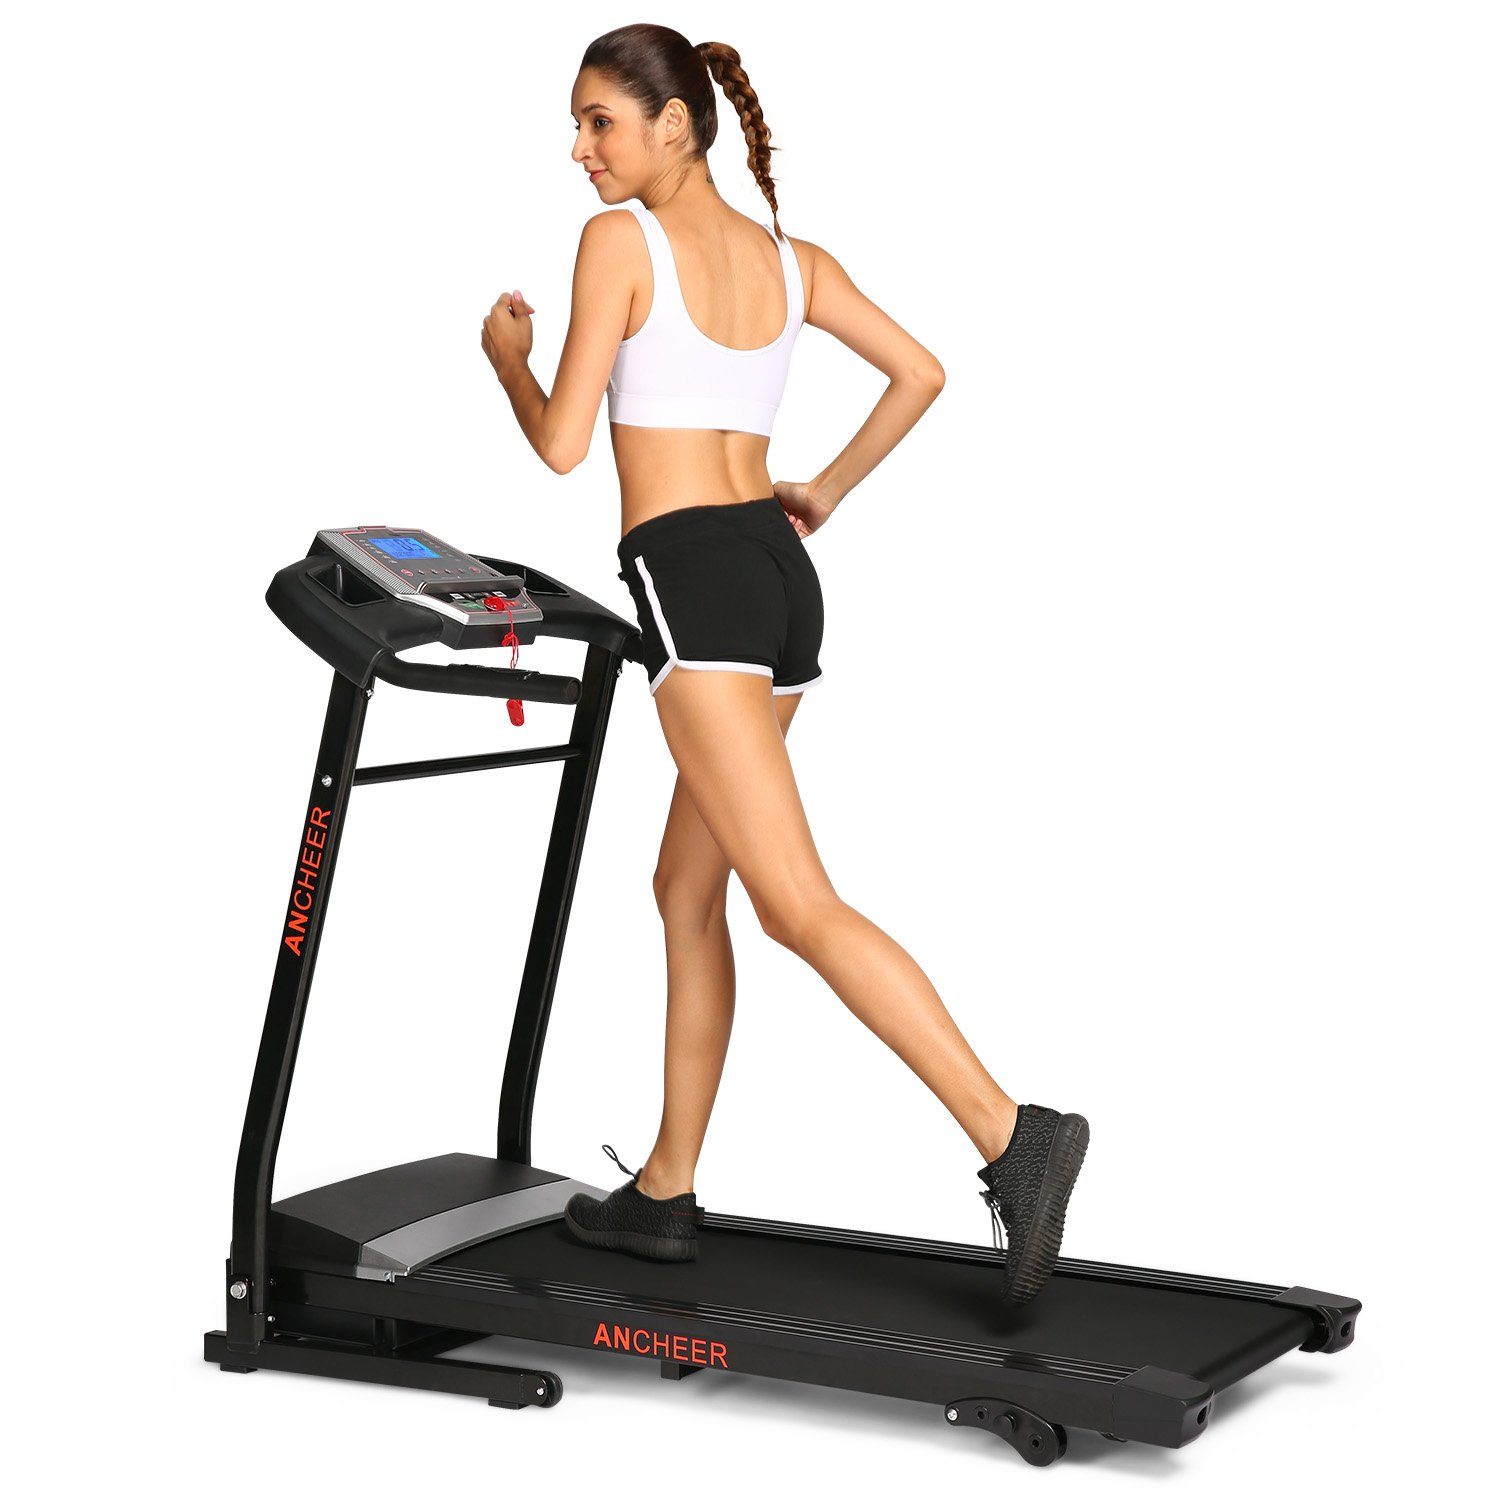 Simpfree Folding Treadmill, Electric Motorized Treadmill Machine with Incline for Home Office Exercise Black.